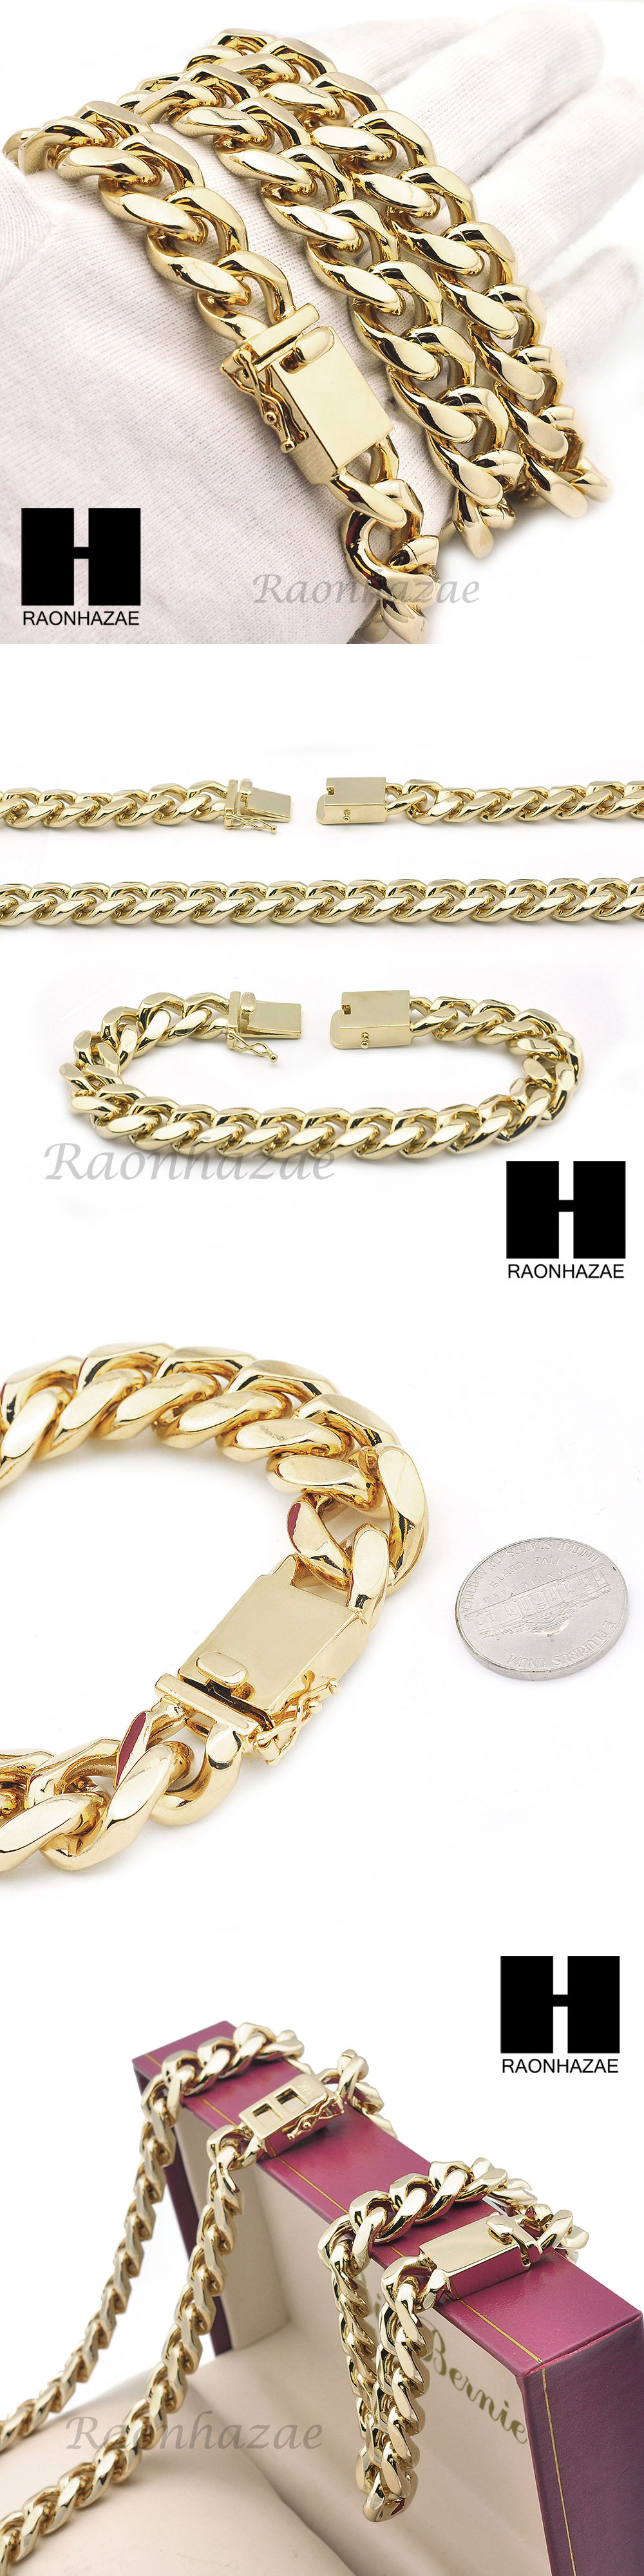 Chains Necklaces and Pendants 137839: New Mens14k Gold Finish Heavy Cuban Link Chain 15Mm 18Mm Bracelet 9 30 36 Set -> BUY IT NOW ONLY: $67.44 on eBay!